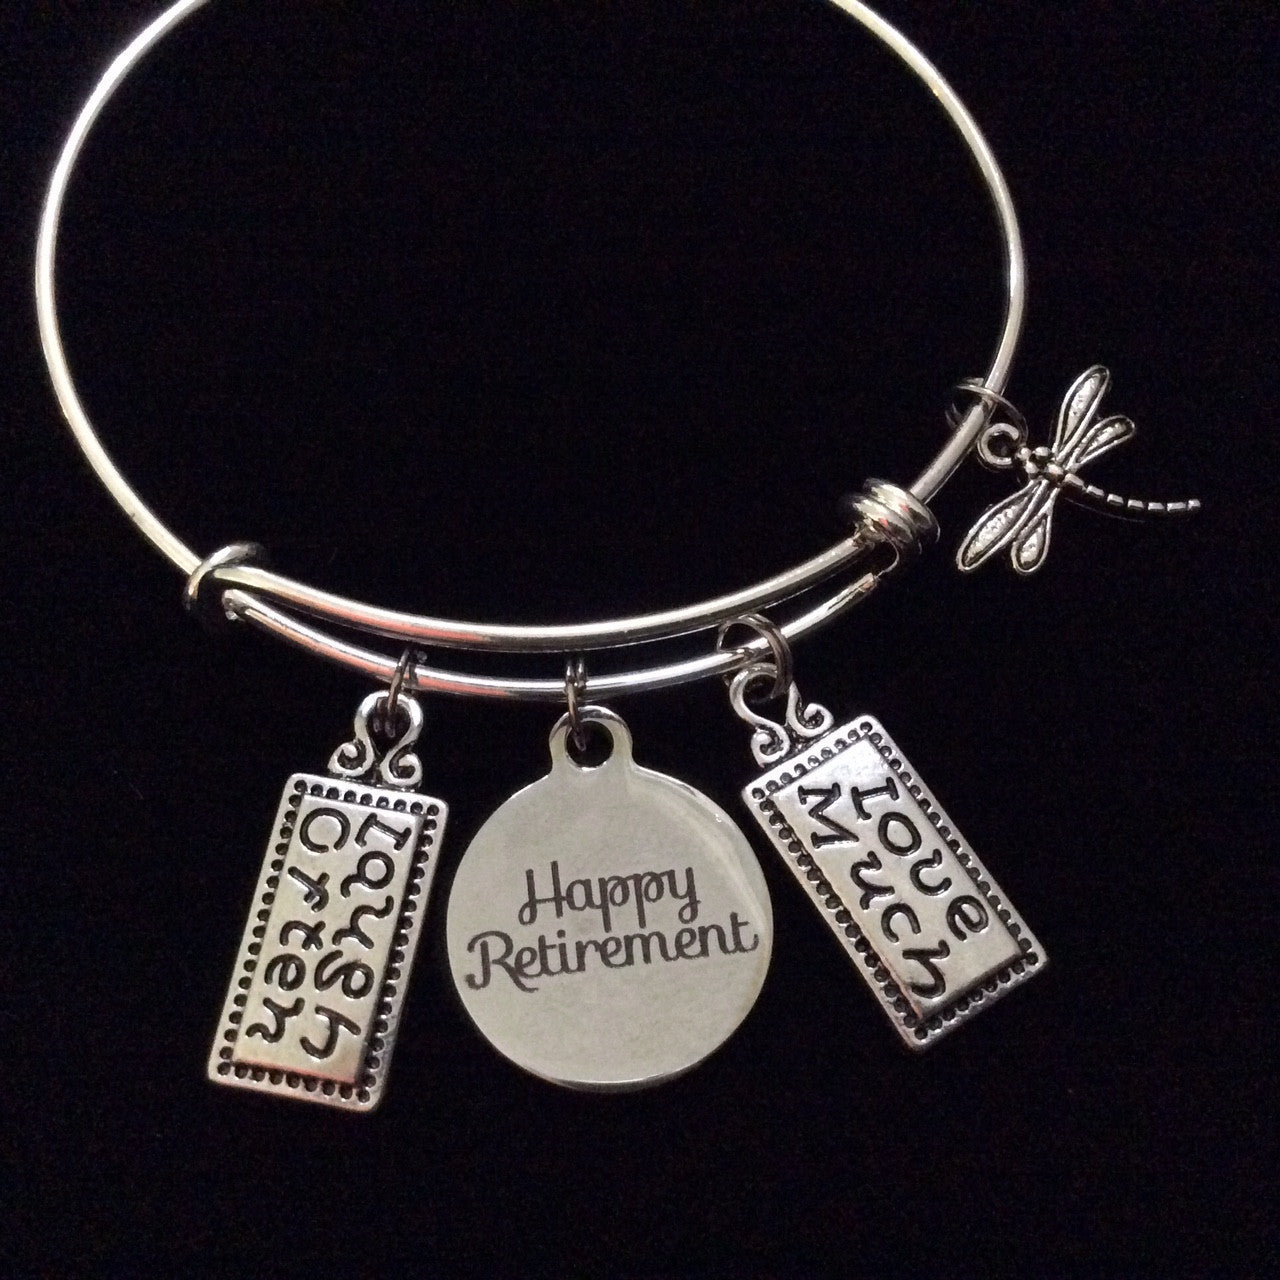 How Much Are Charm Bracelets: Happy Retirement Laugh Often Love Much Expandable Silver